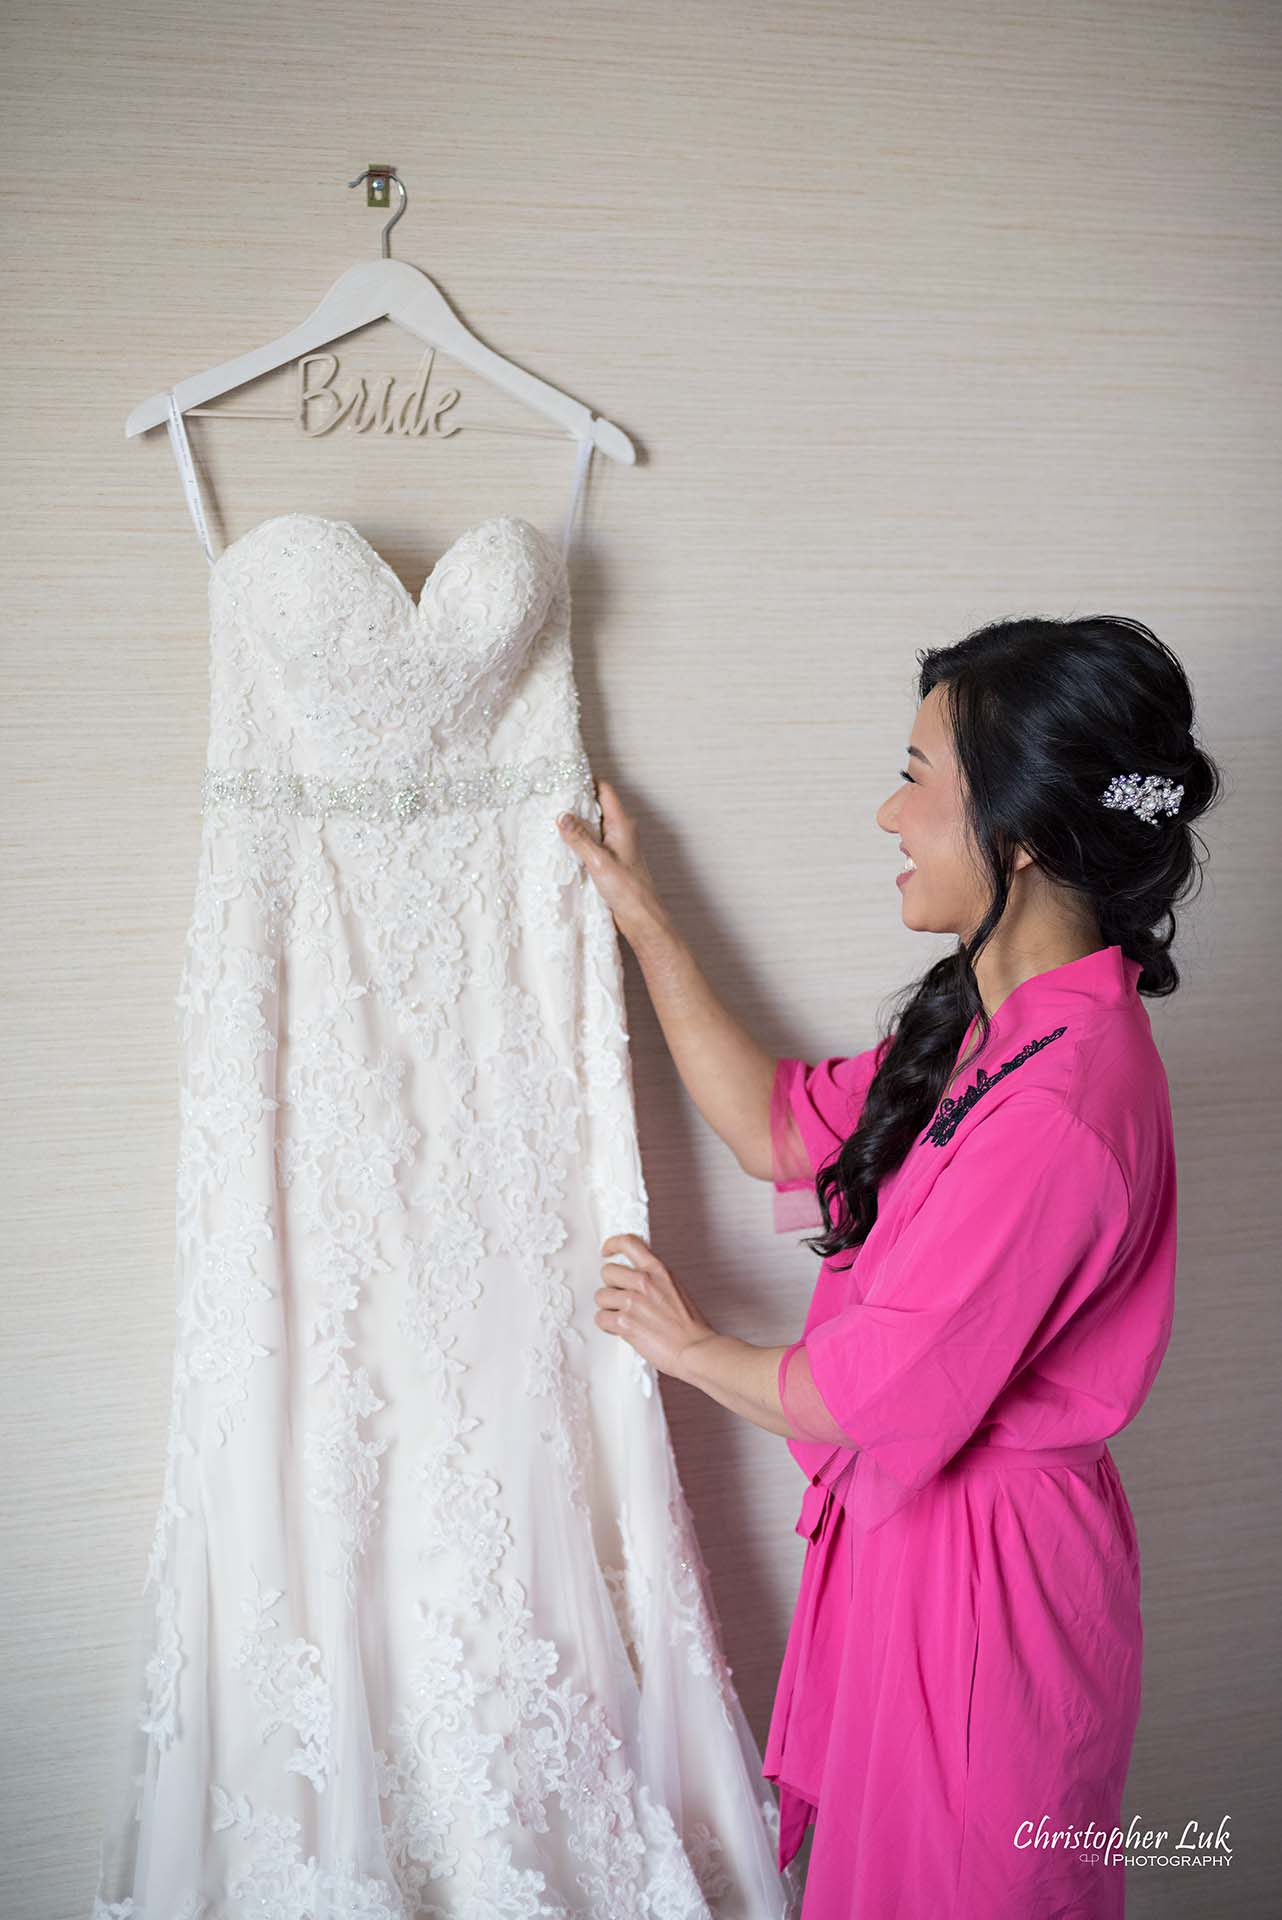 Christopher Luk Toronto Wedding Photographer Hotel Bride Getting Ready Details Bridal Gown Dress Hanger